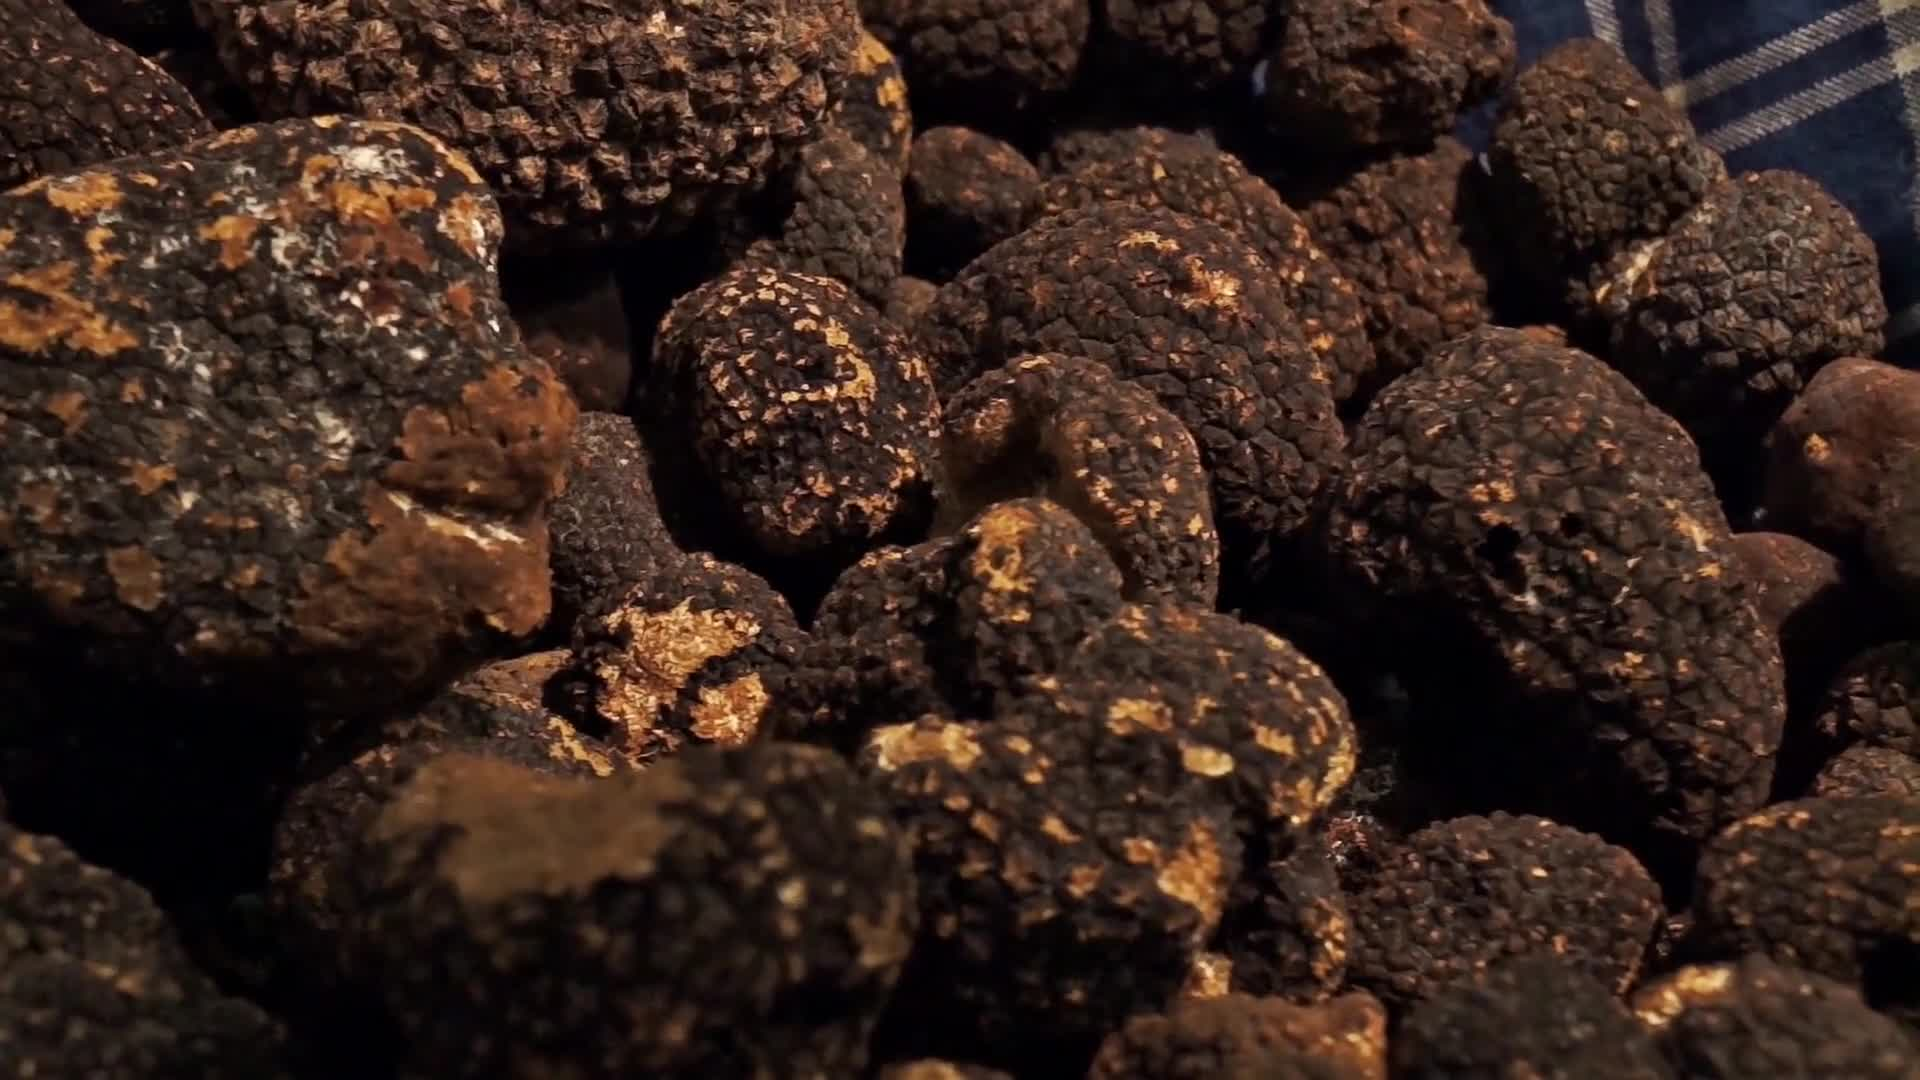 Bunch of truffles